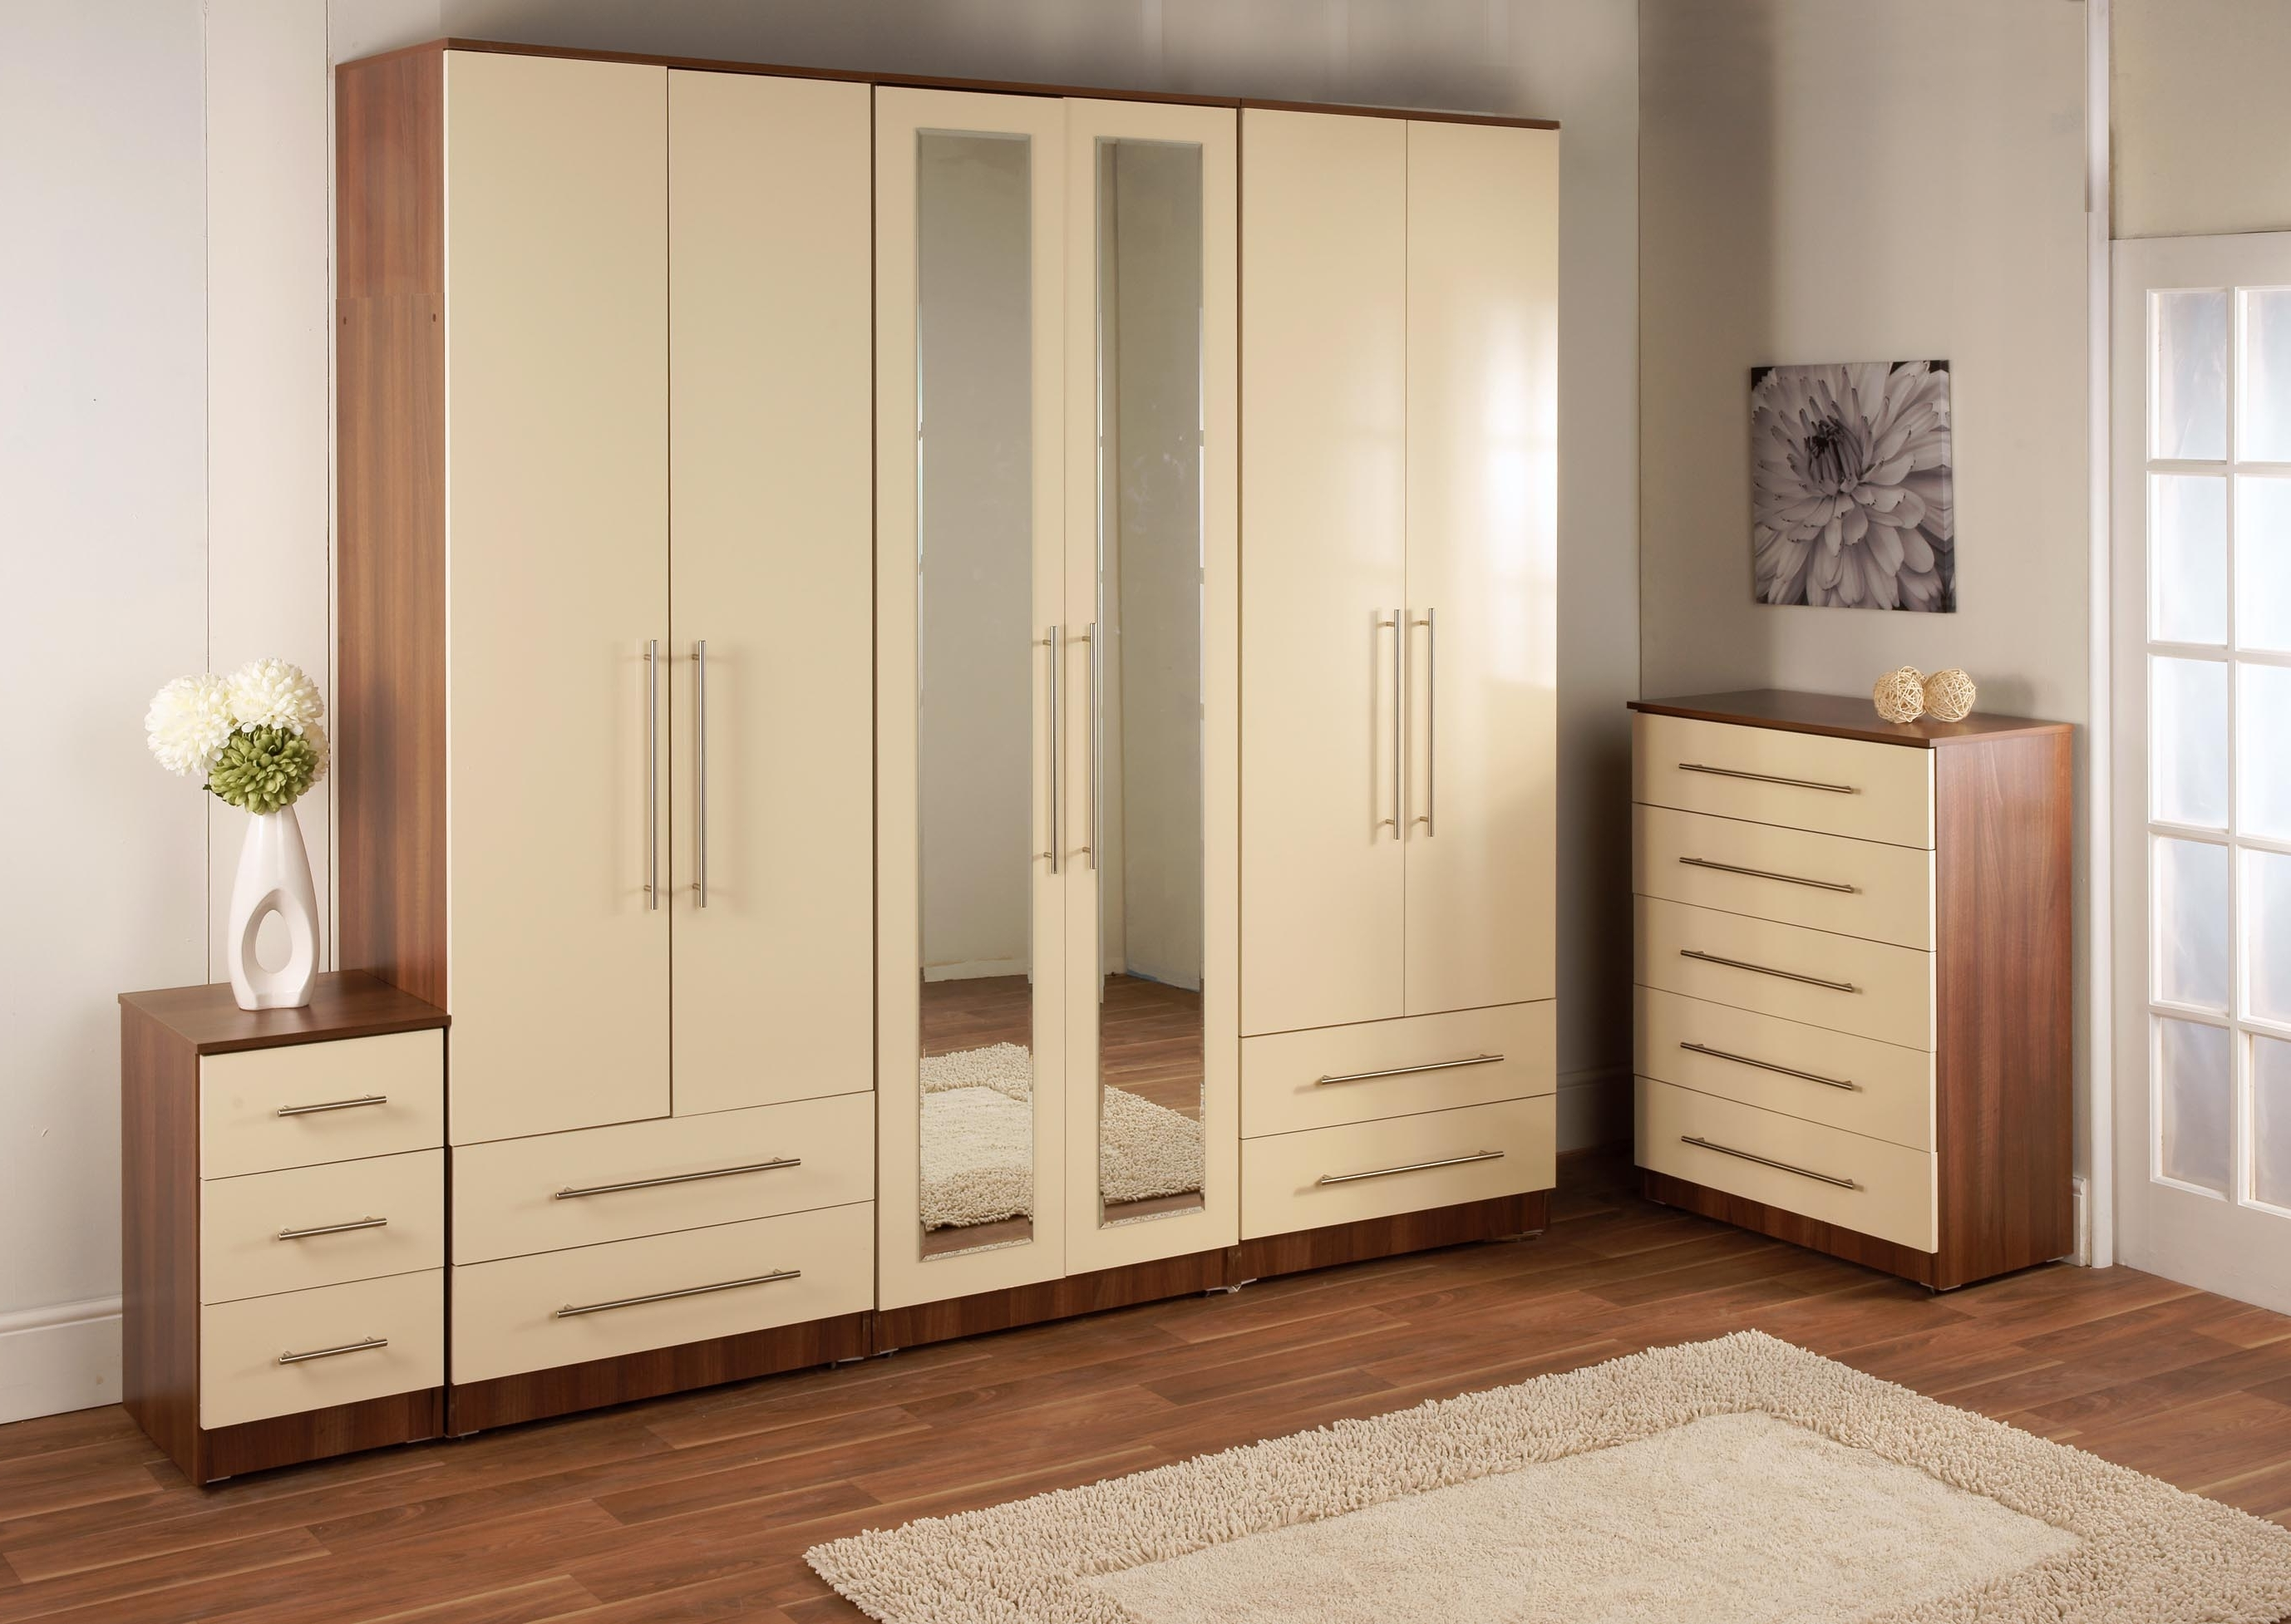 Fashionable Cream Gloss Wardrobes Throughout Bedroom Furniture Wardrobes (View 6 of 15)